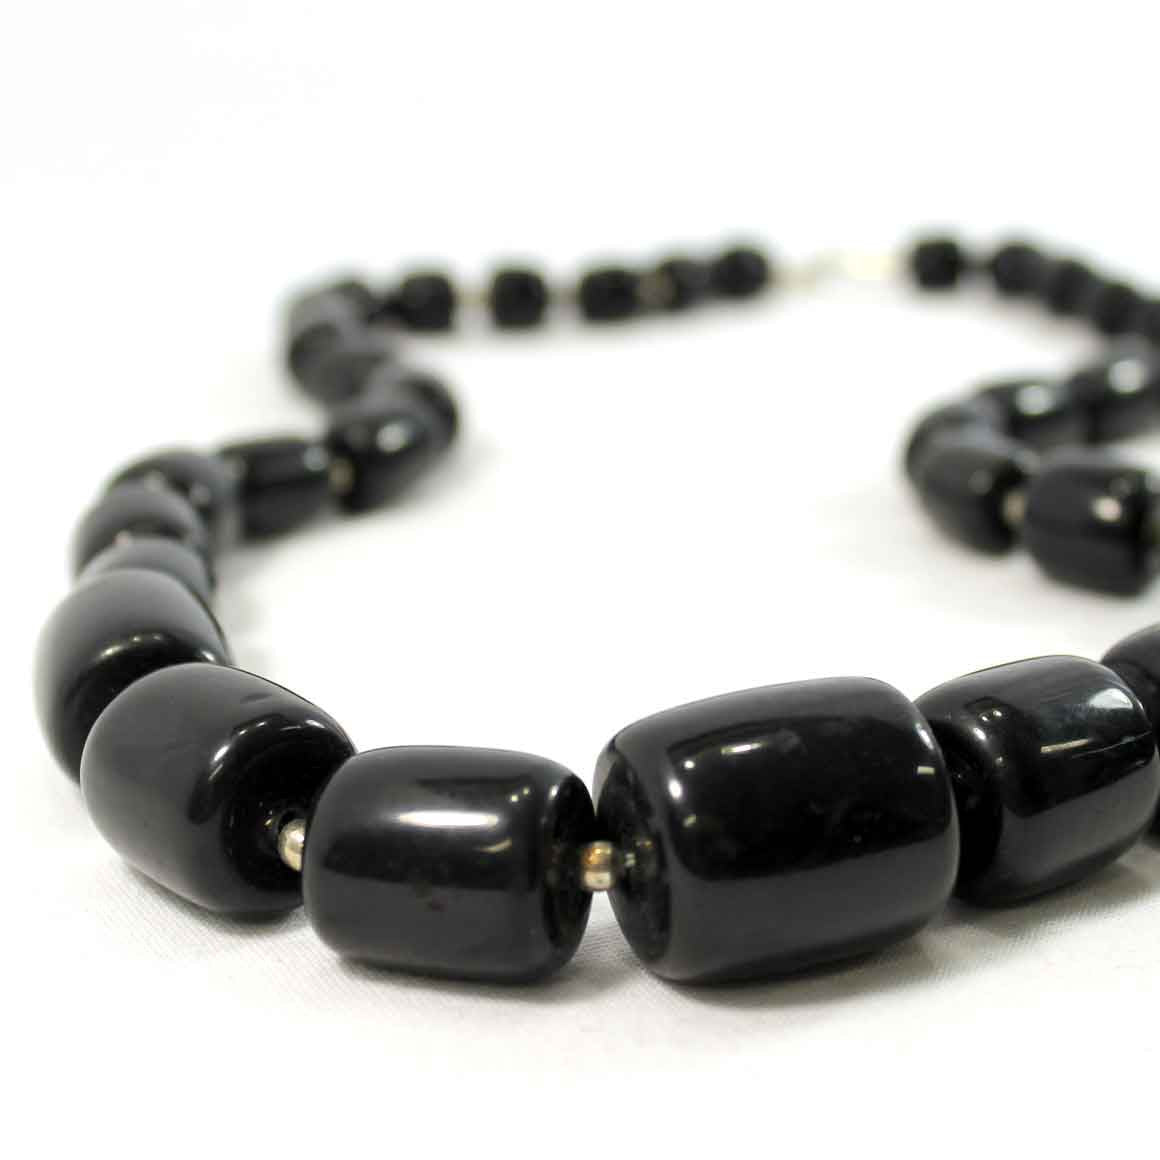 Fair Trade Black Olive Necklace